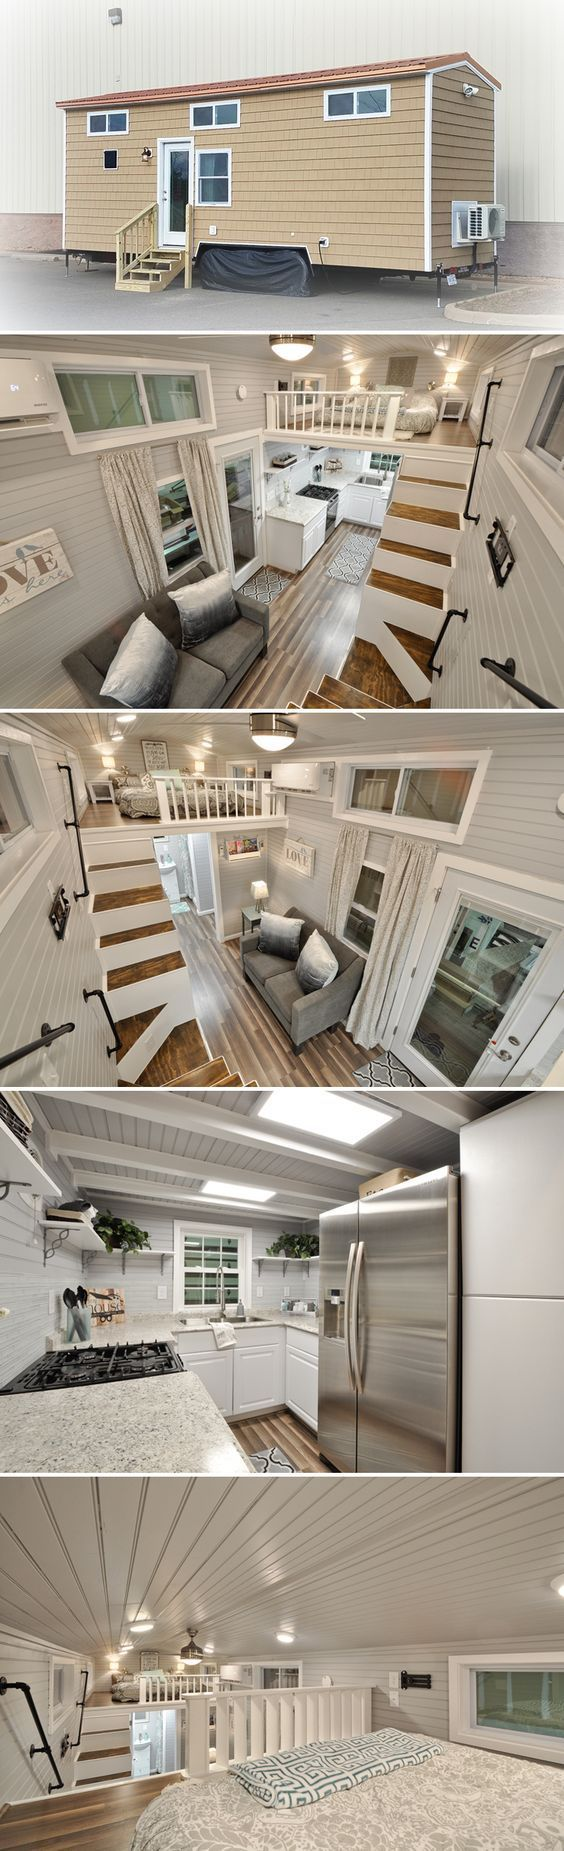 Kate by Tiny House Building Company #tinyhouses